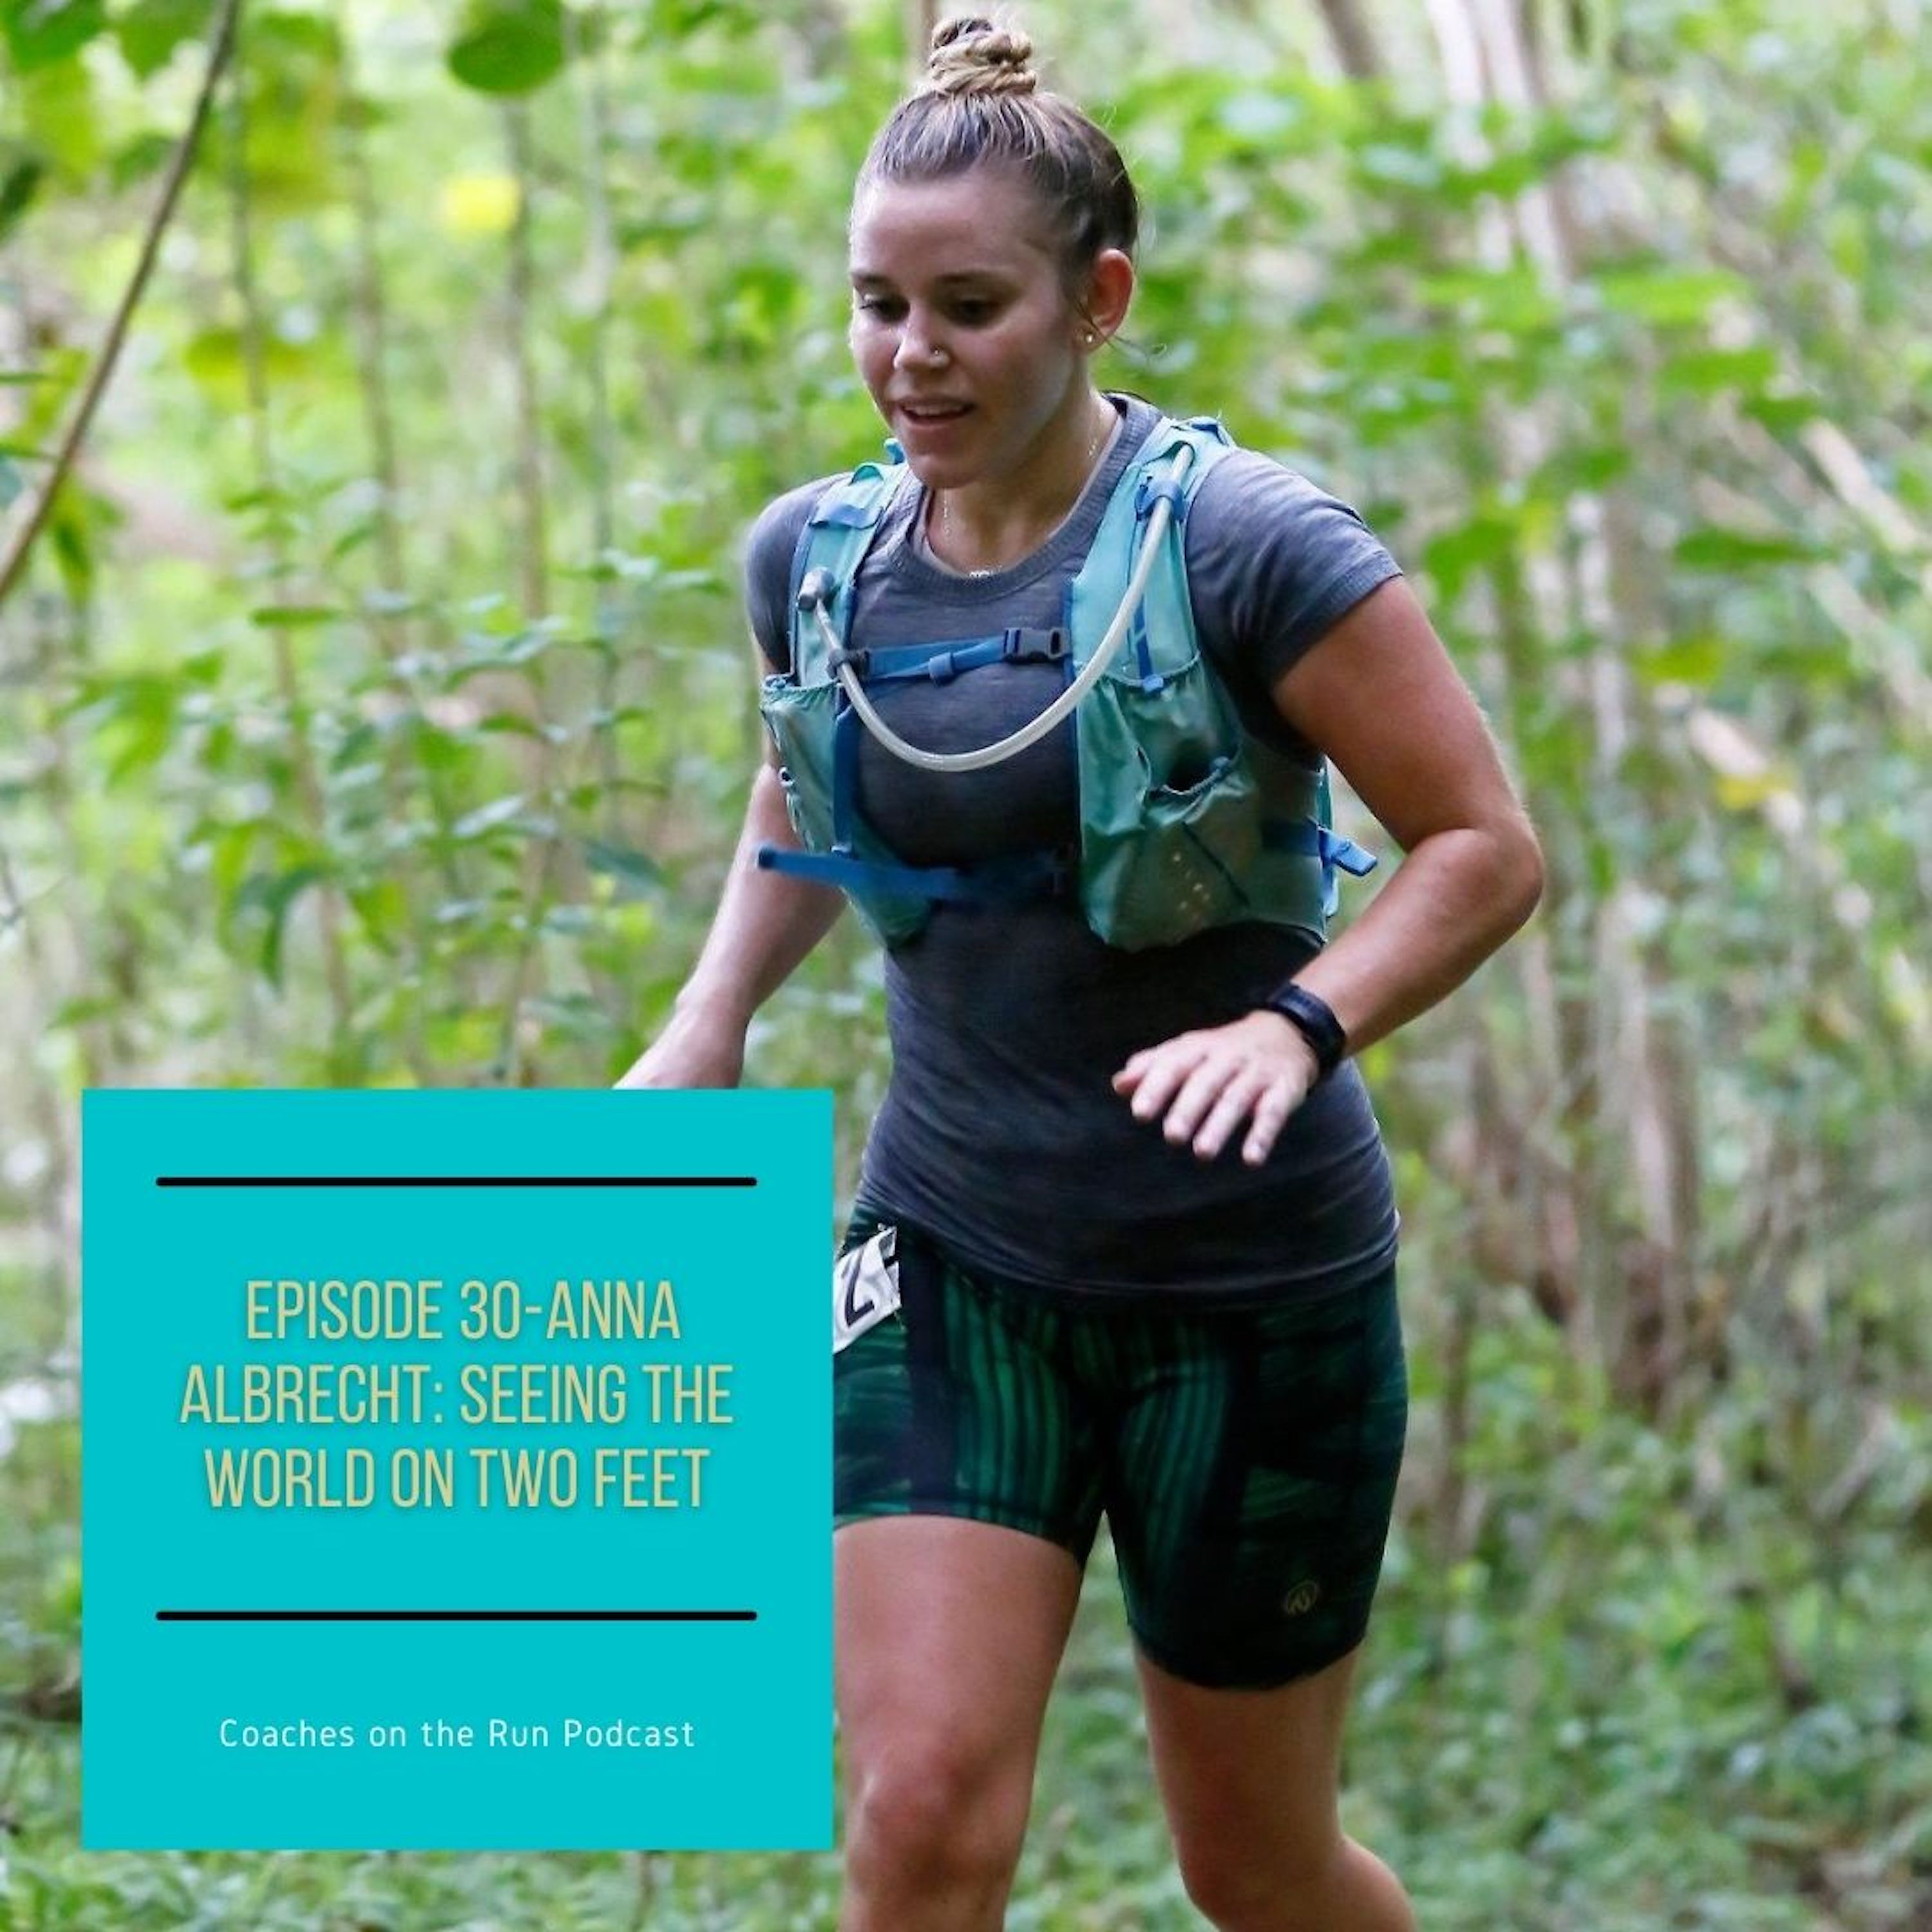 Anna Albrecht: Seeing the World on Two Feet